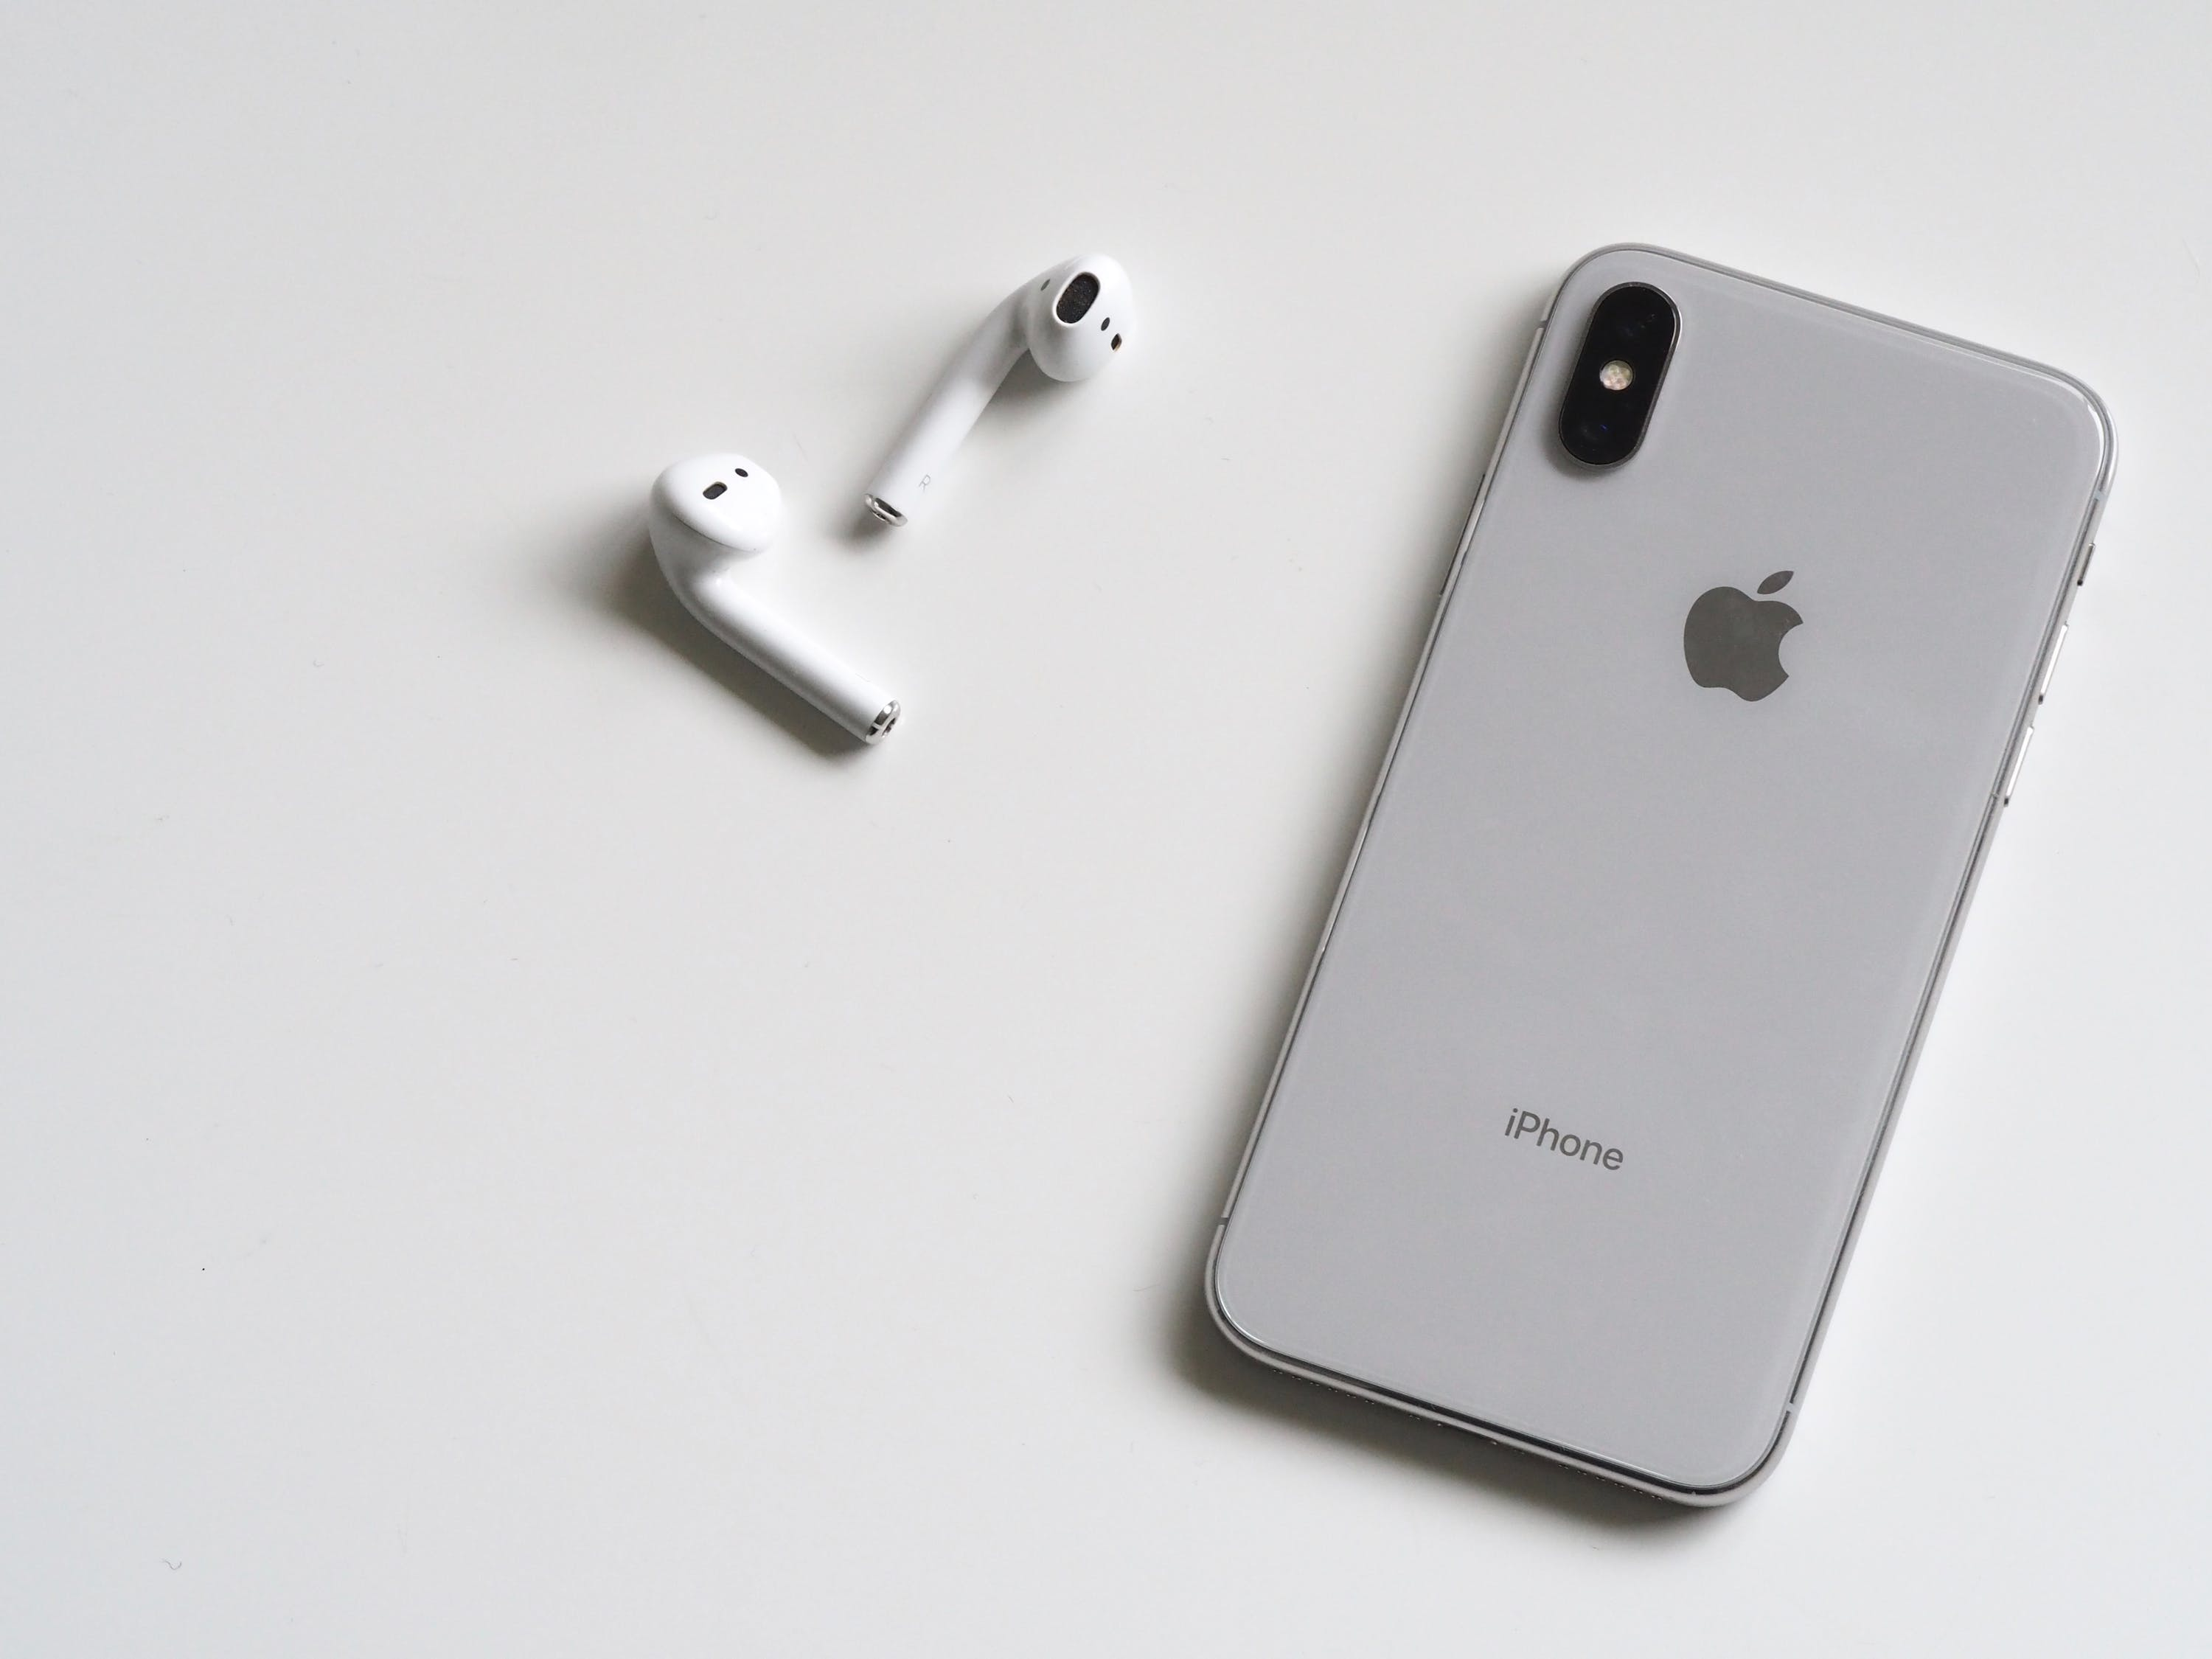 iPhone X AirPods